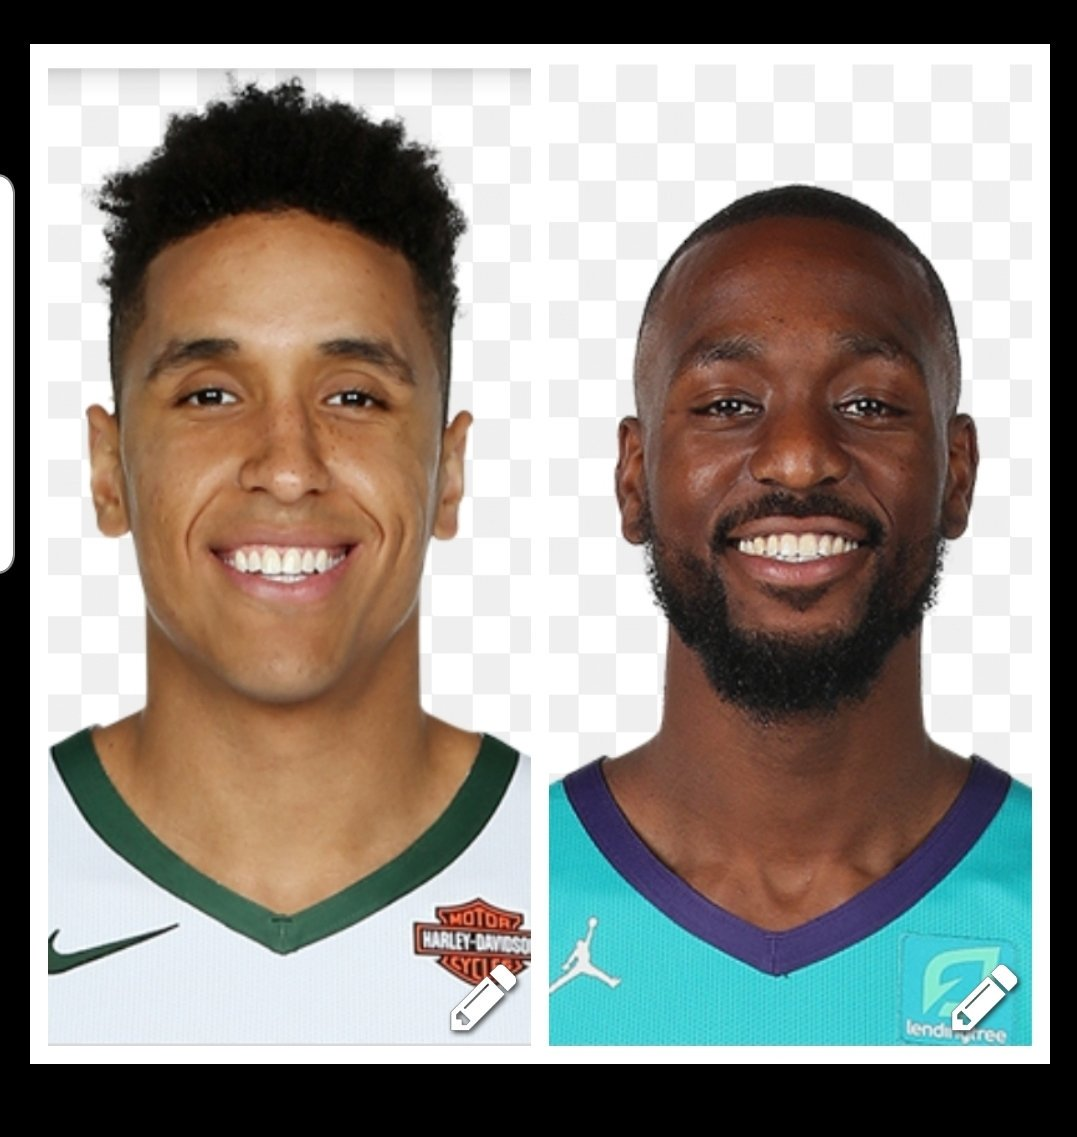 Alright Mavs fans who would you rather have on the squad next year. LIKE for Kemba. RT for Brogdan. #MFFL